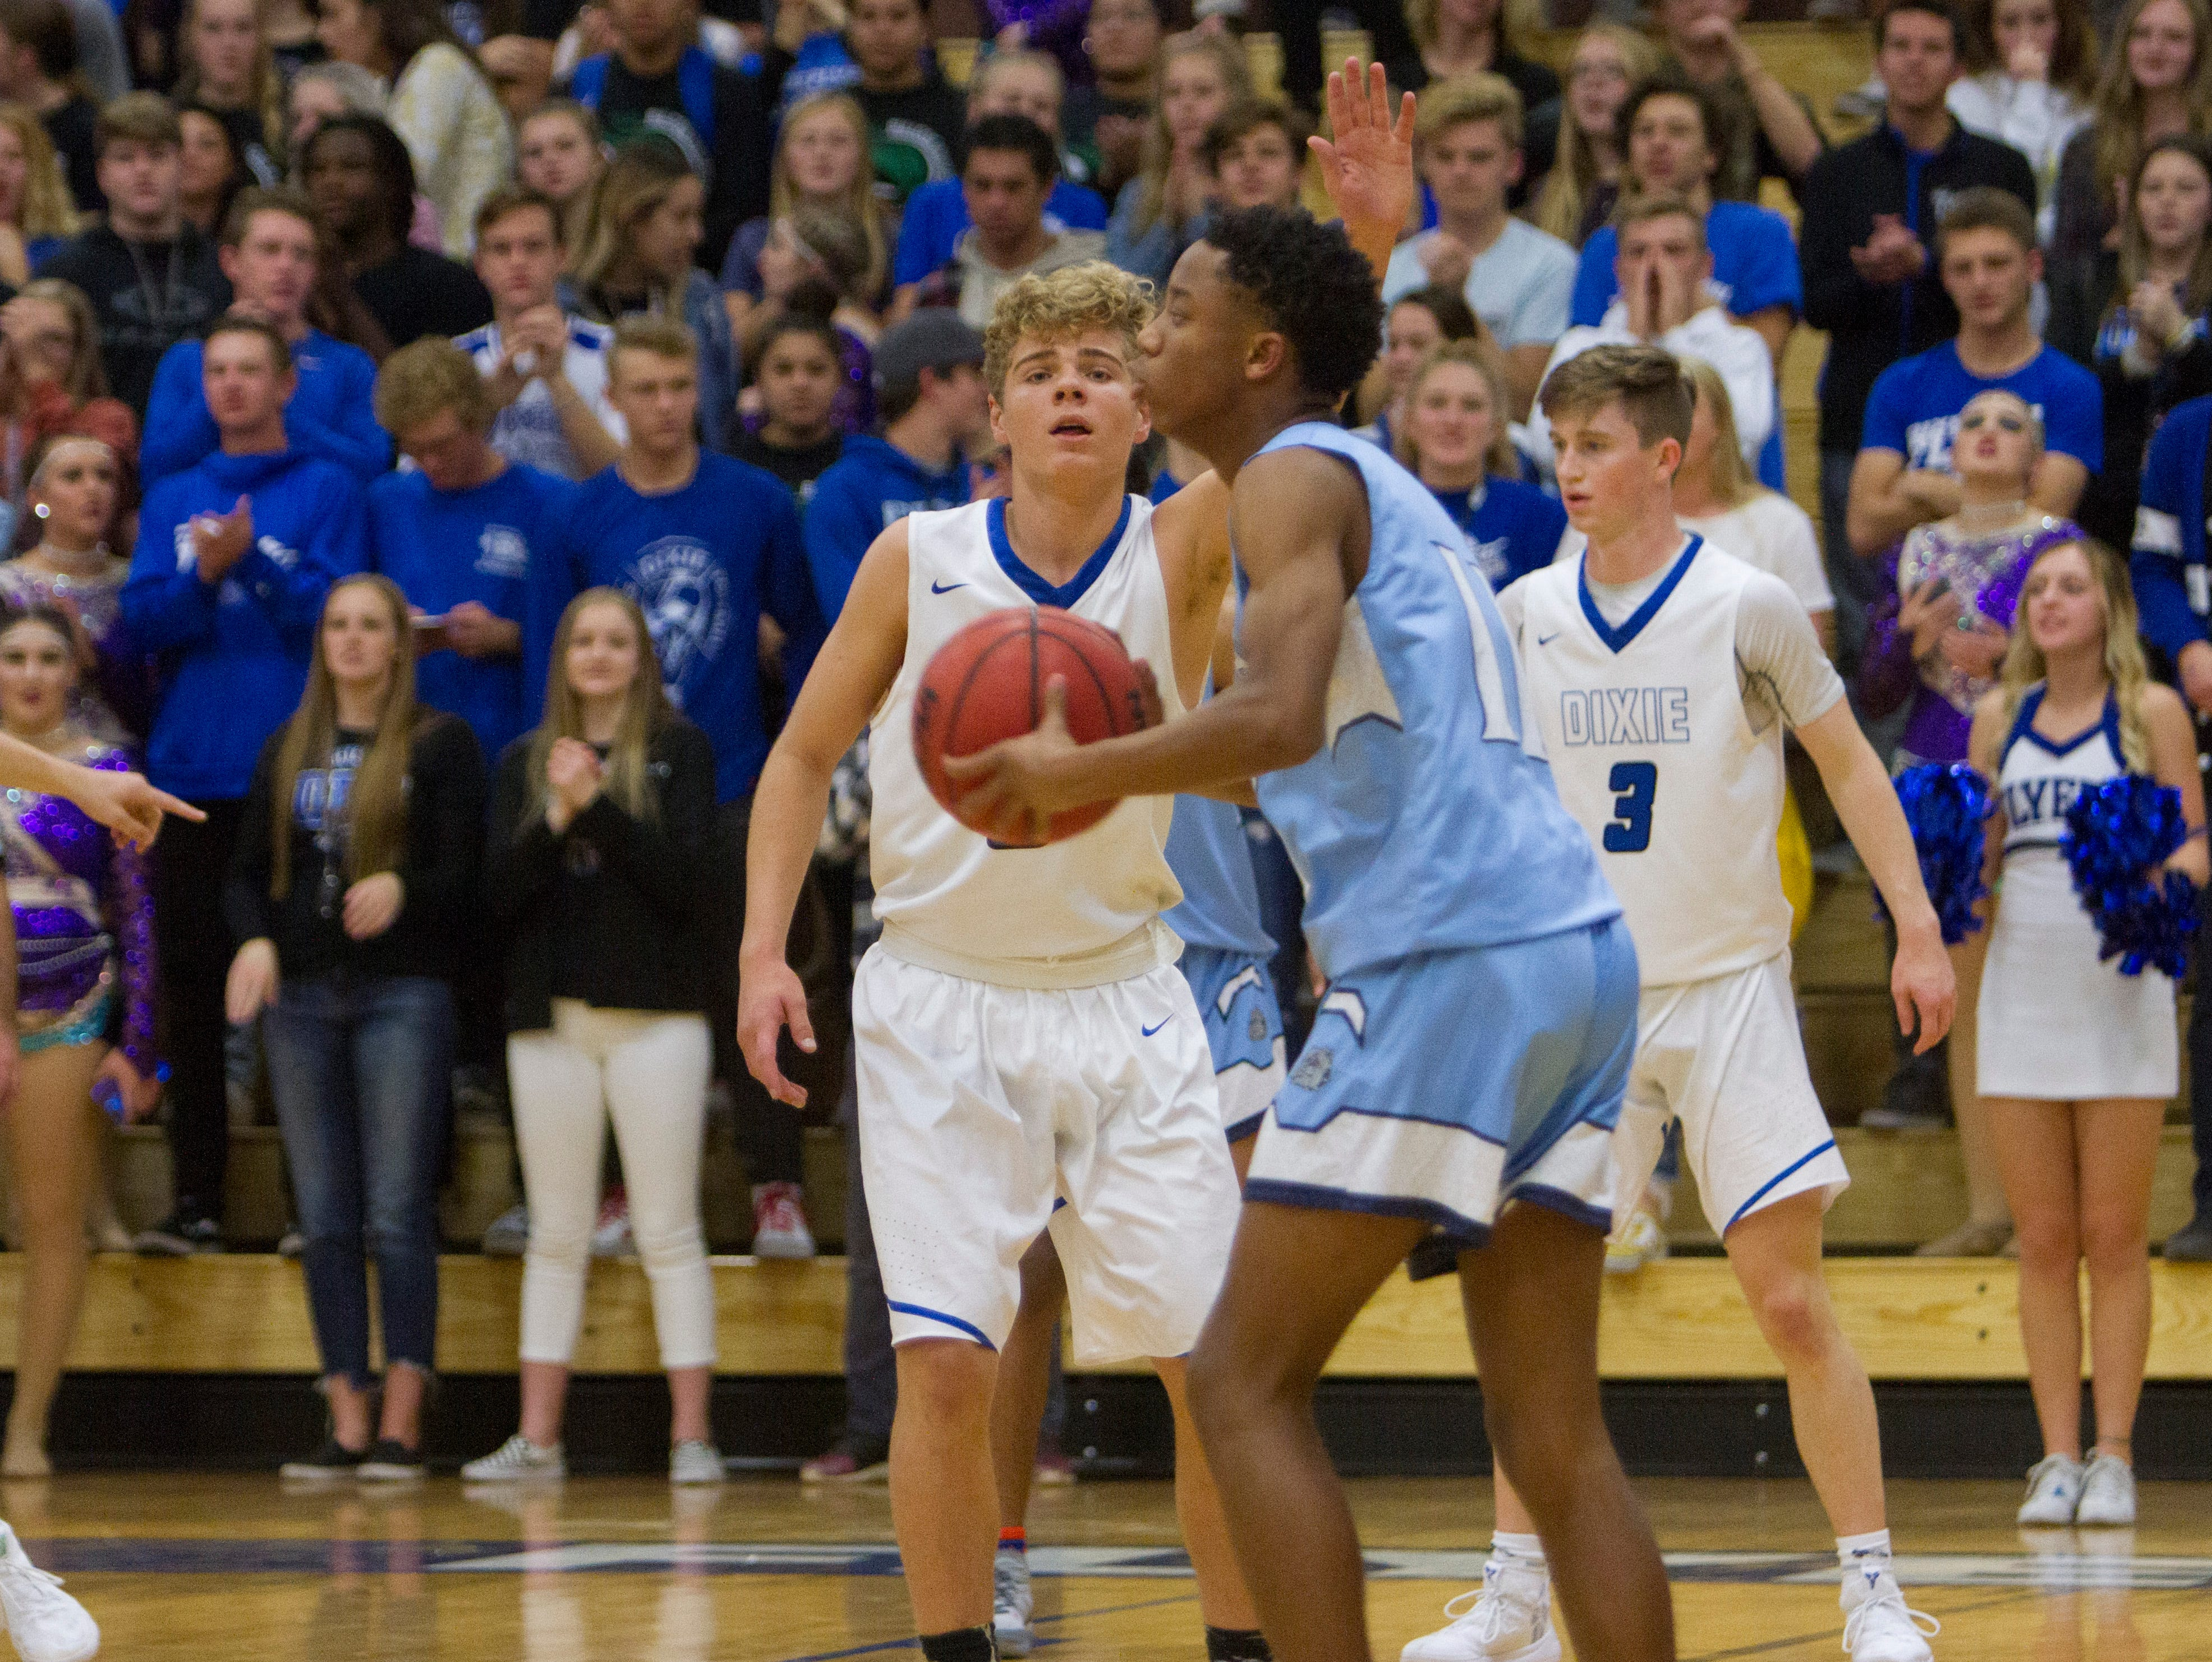 Dixie High basketball plays against Centennial High School during the Ken Robinson Classic Friday, Dec. 7, 2018.